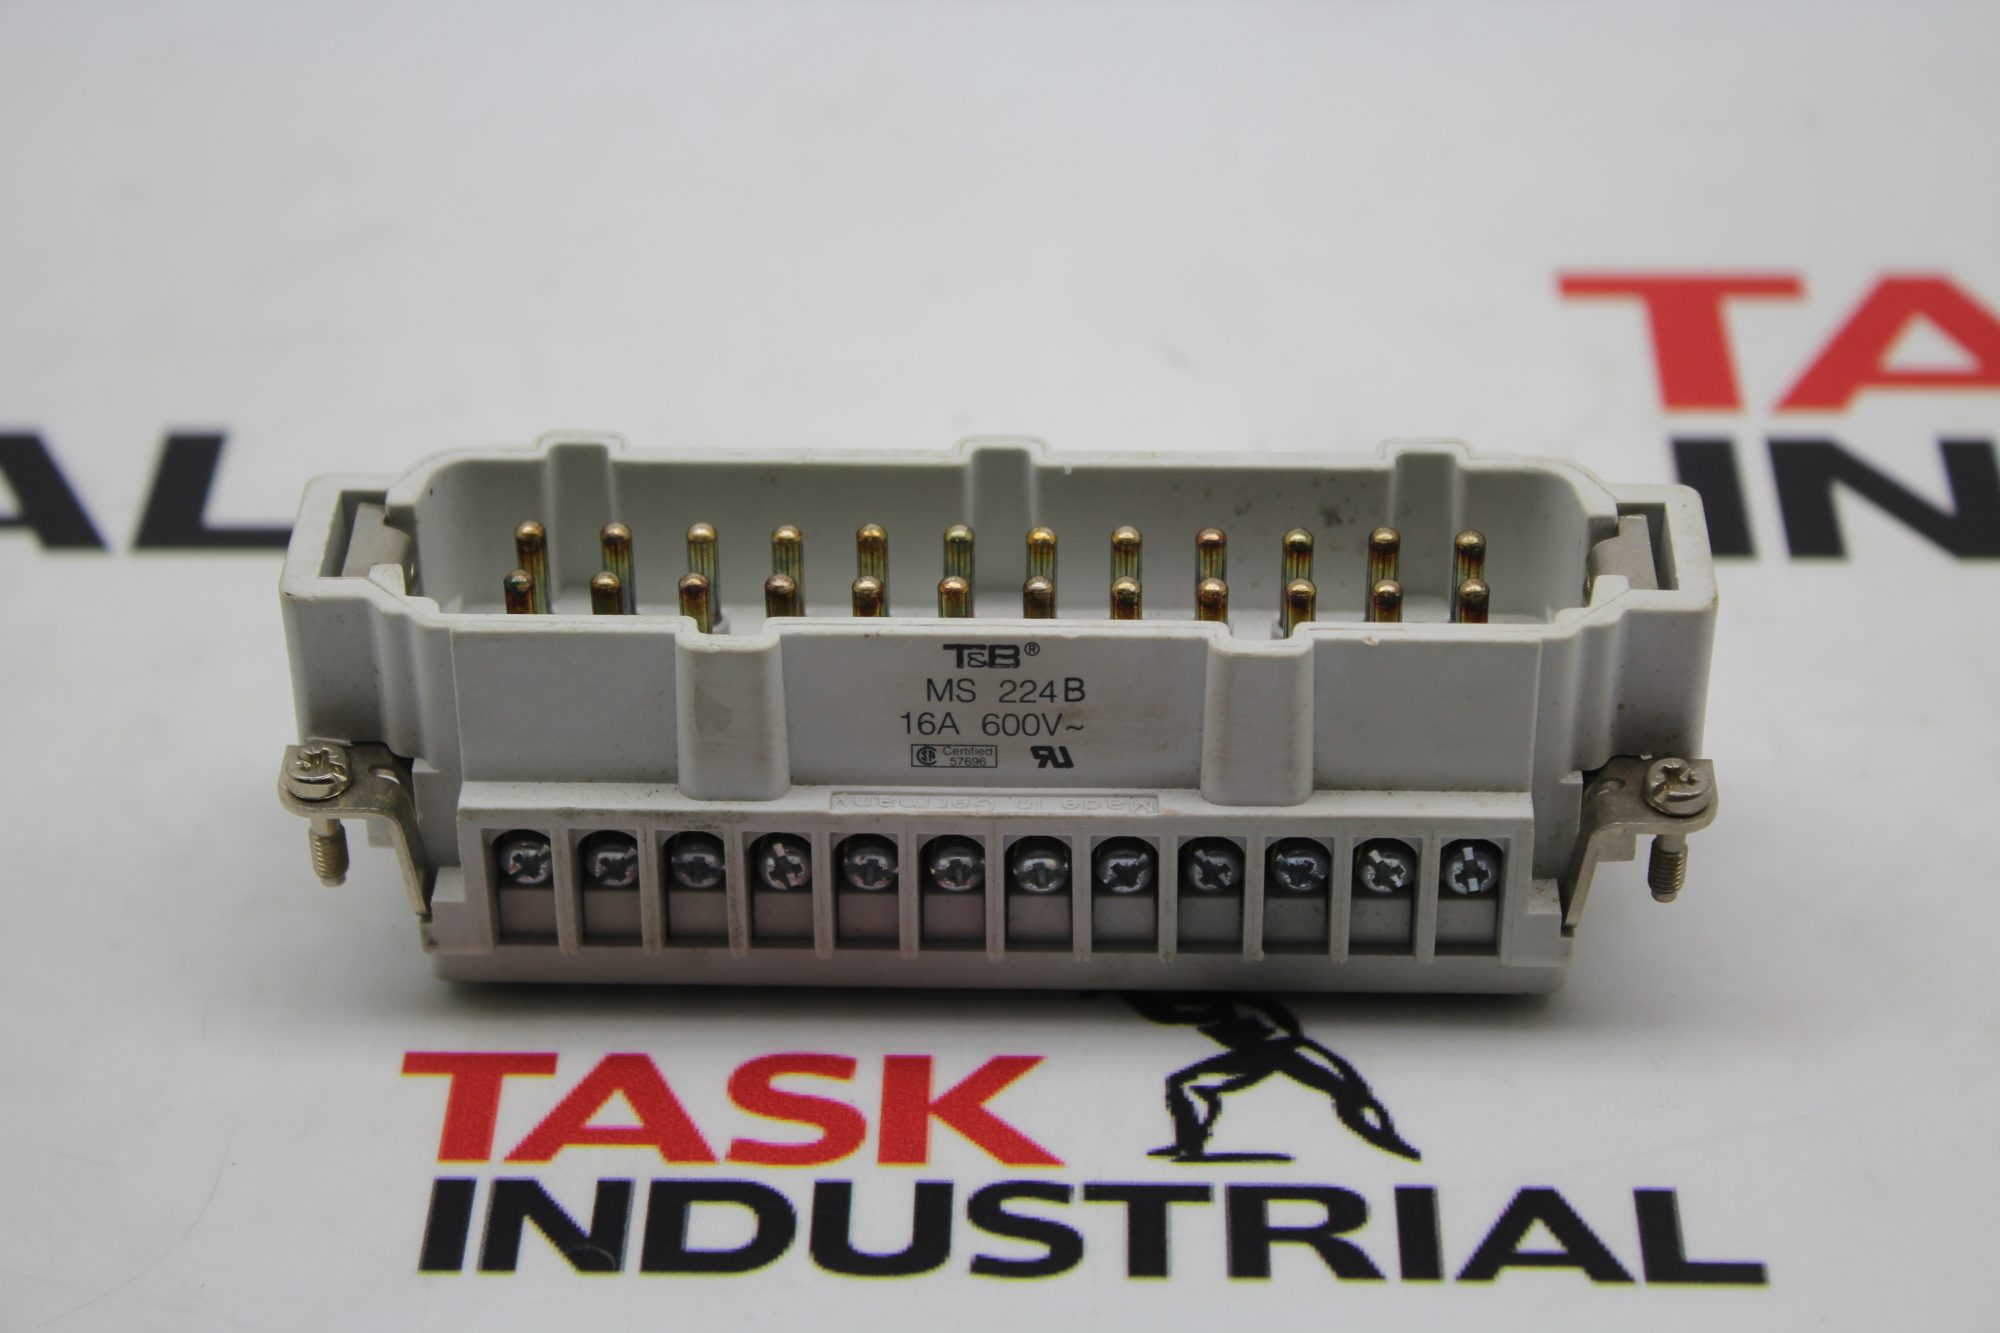 T&B MS 224B 16A 600V Connectors